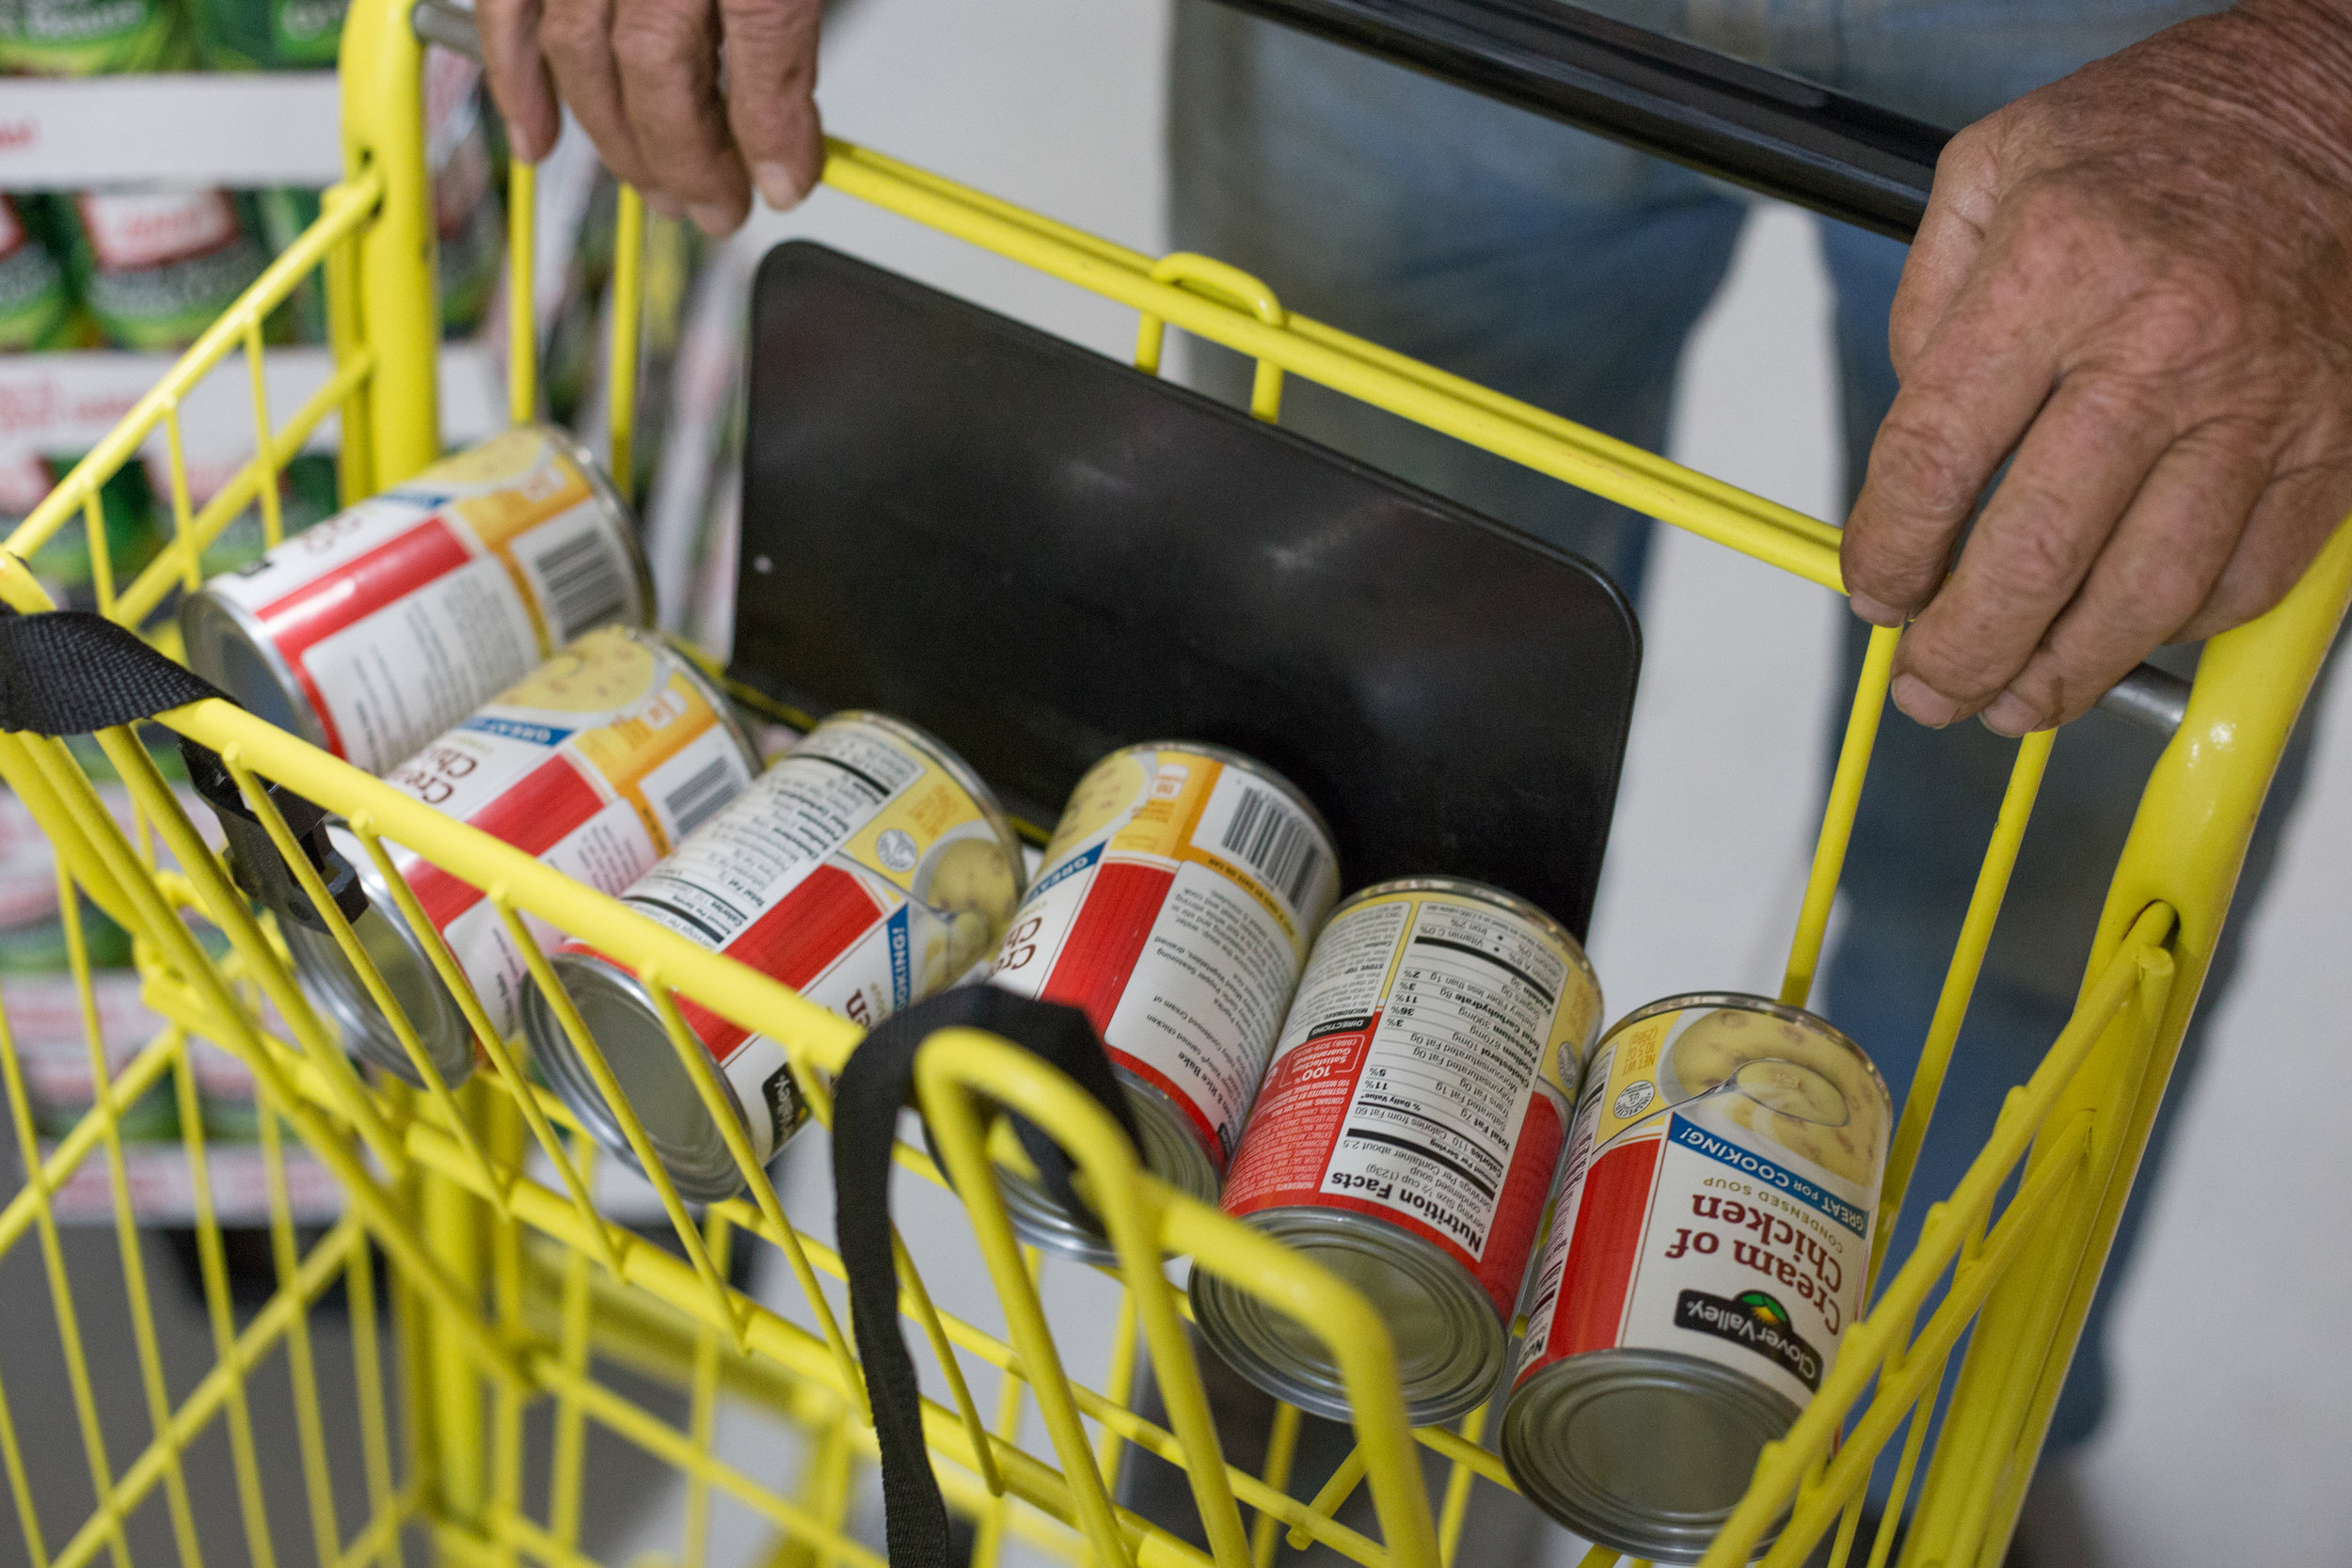 George Beaty of Evensville, Tenn. fills his shopping cart with cream of chicken soup for his neighbor who was not feeling well at Dollar General in Evensville, Tenn. Thursday, Nov. 16 2017. Store manager Justin Ray said that although the store does not carry fresh produce, it is an important grocery source for the people in the surrounding community due to the lack of options.